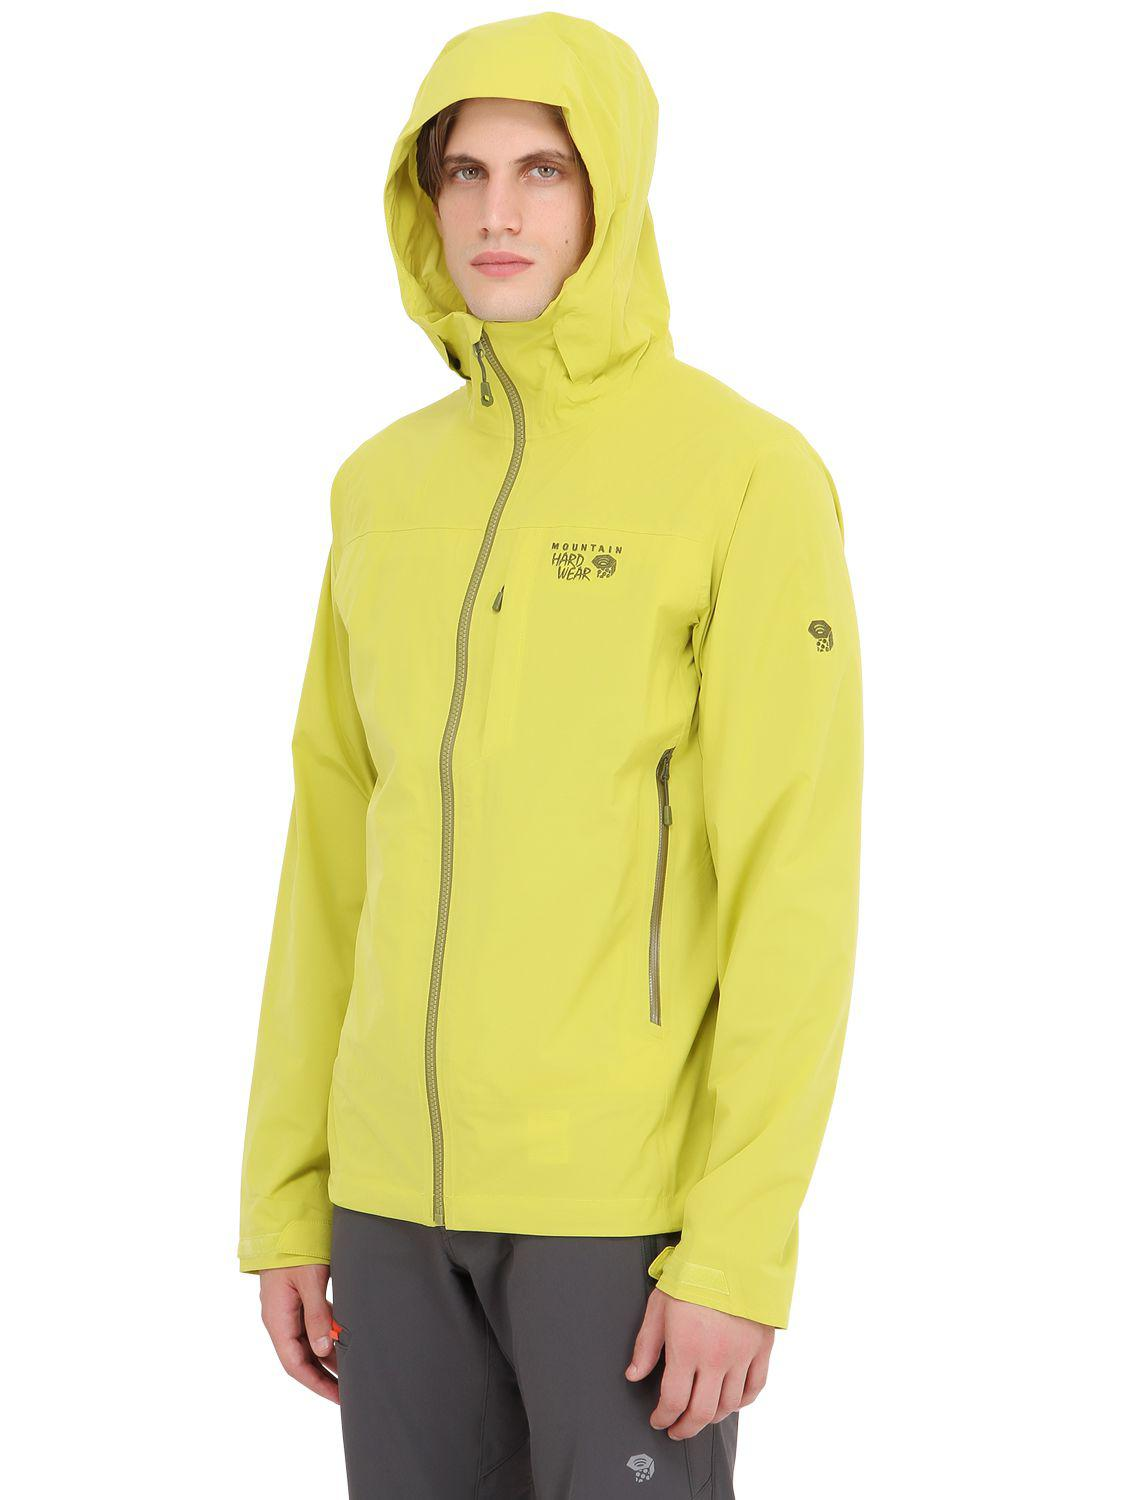 Lyst Mountain Hardwear Stretch Ozonic Hardshell Jacket